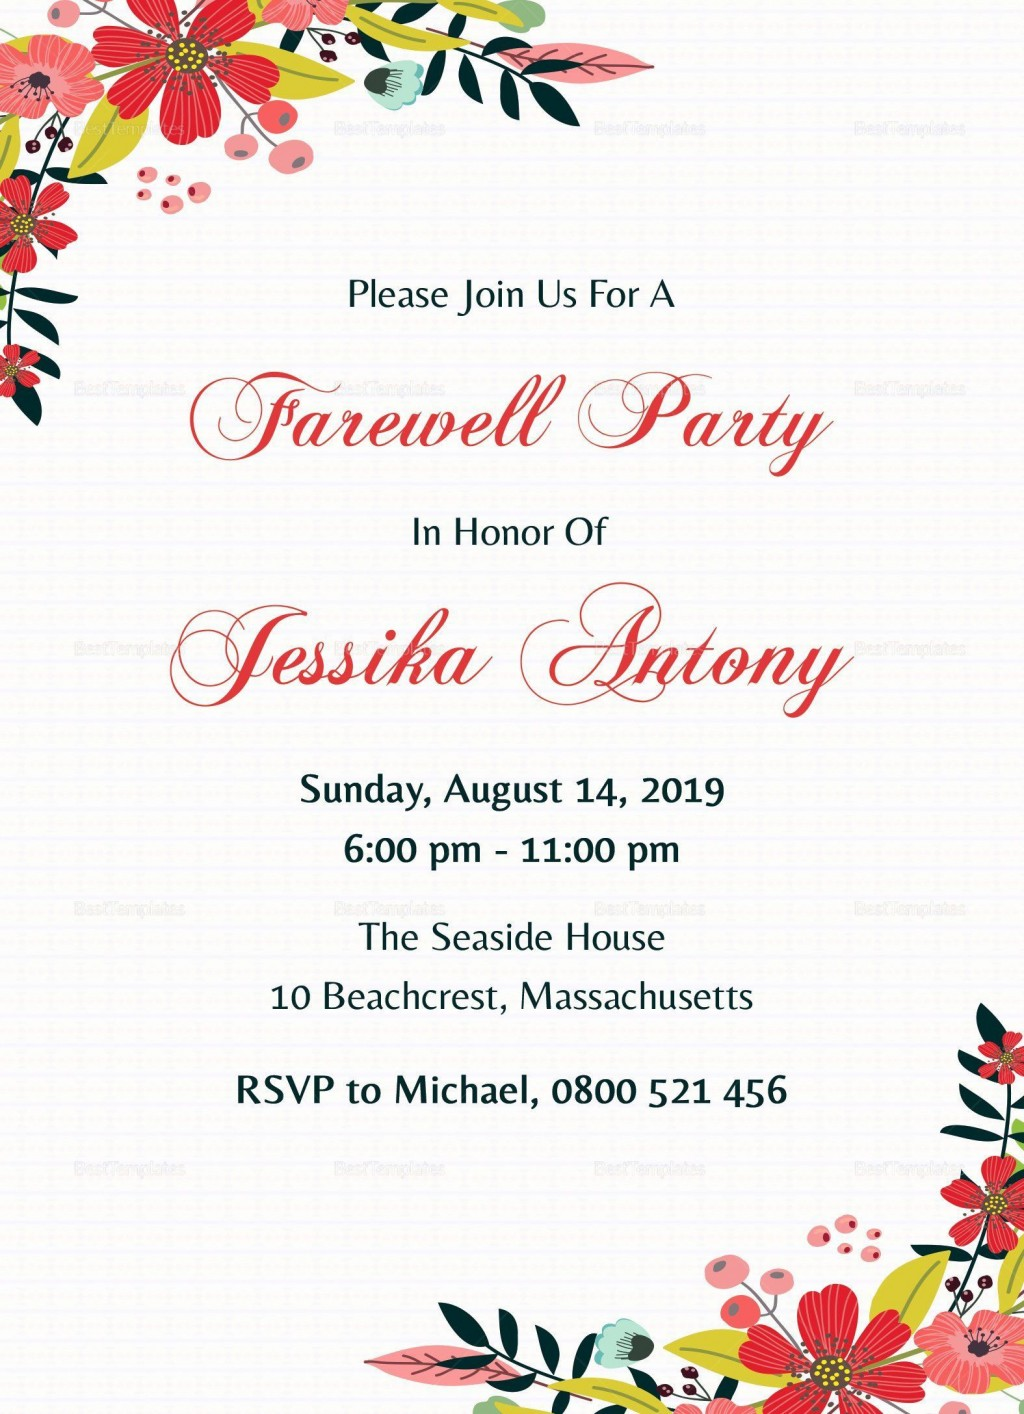 001 Excellent Farewell Party Invitation Template Free Photo  Email Printable WordLarge